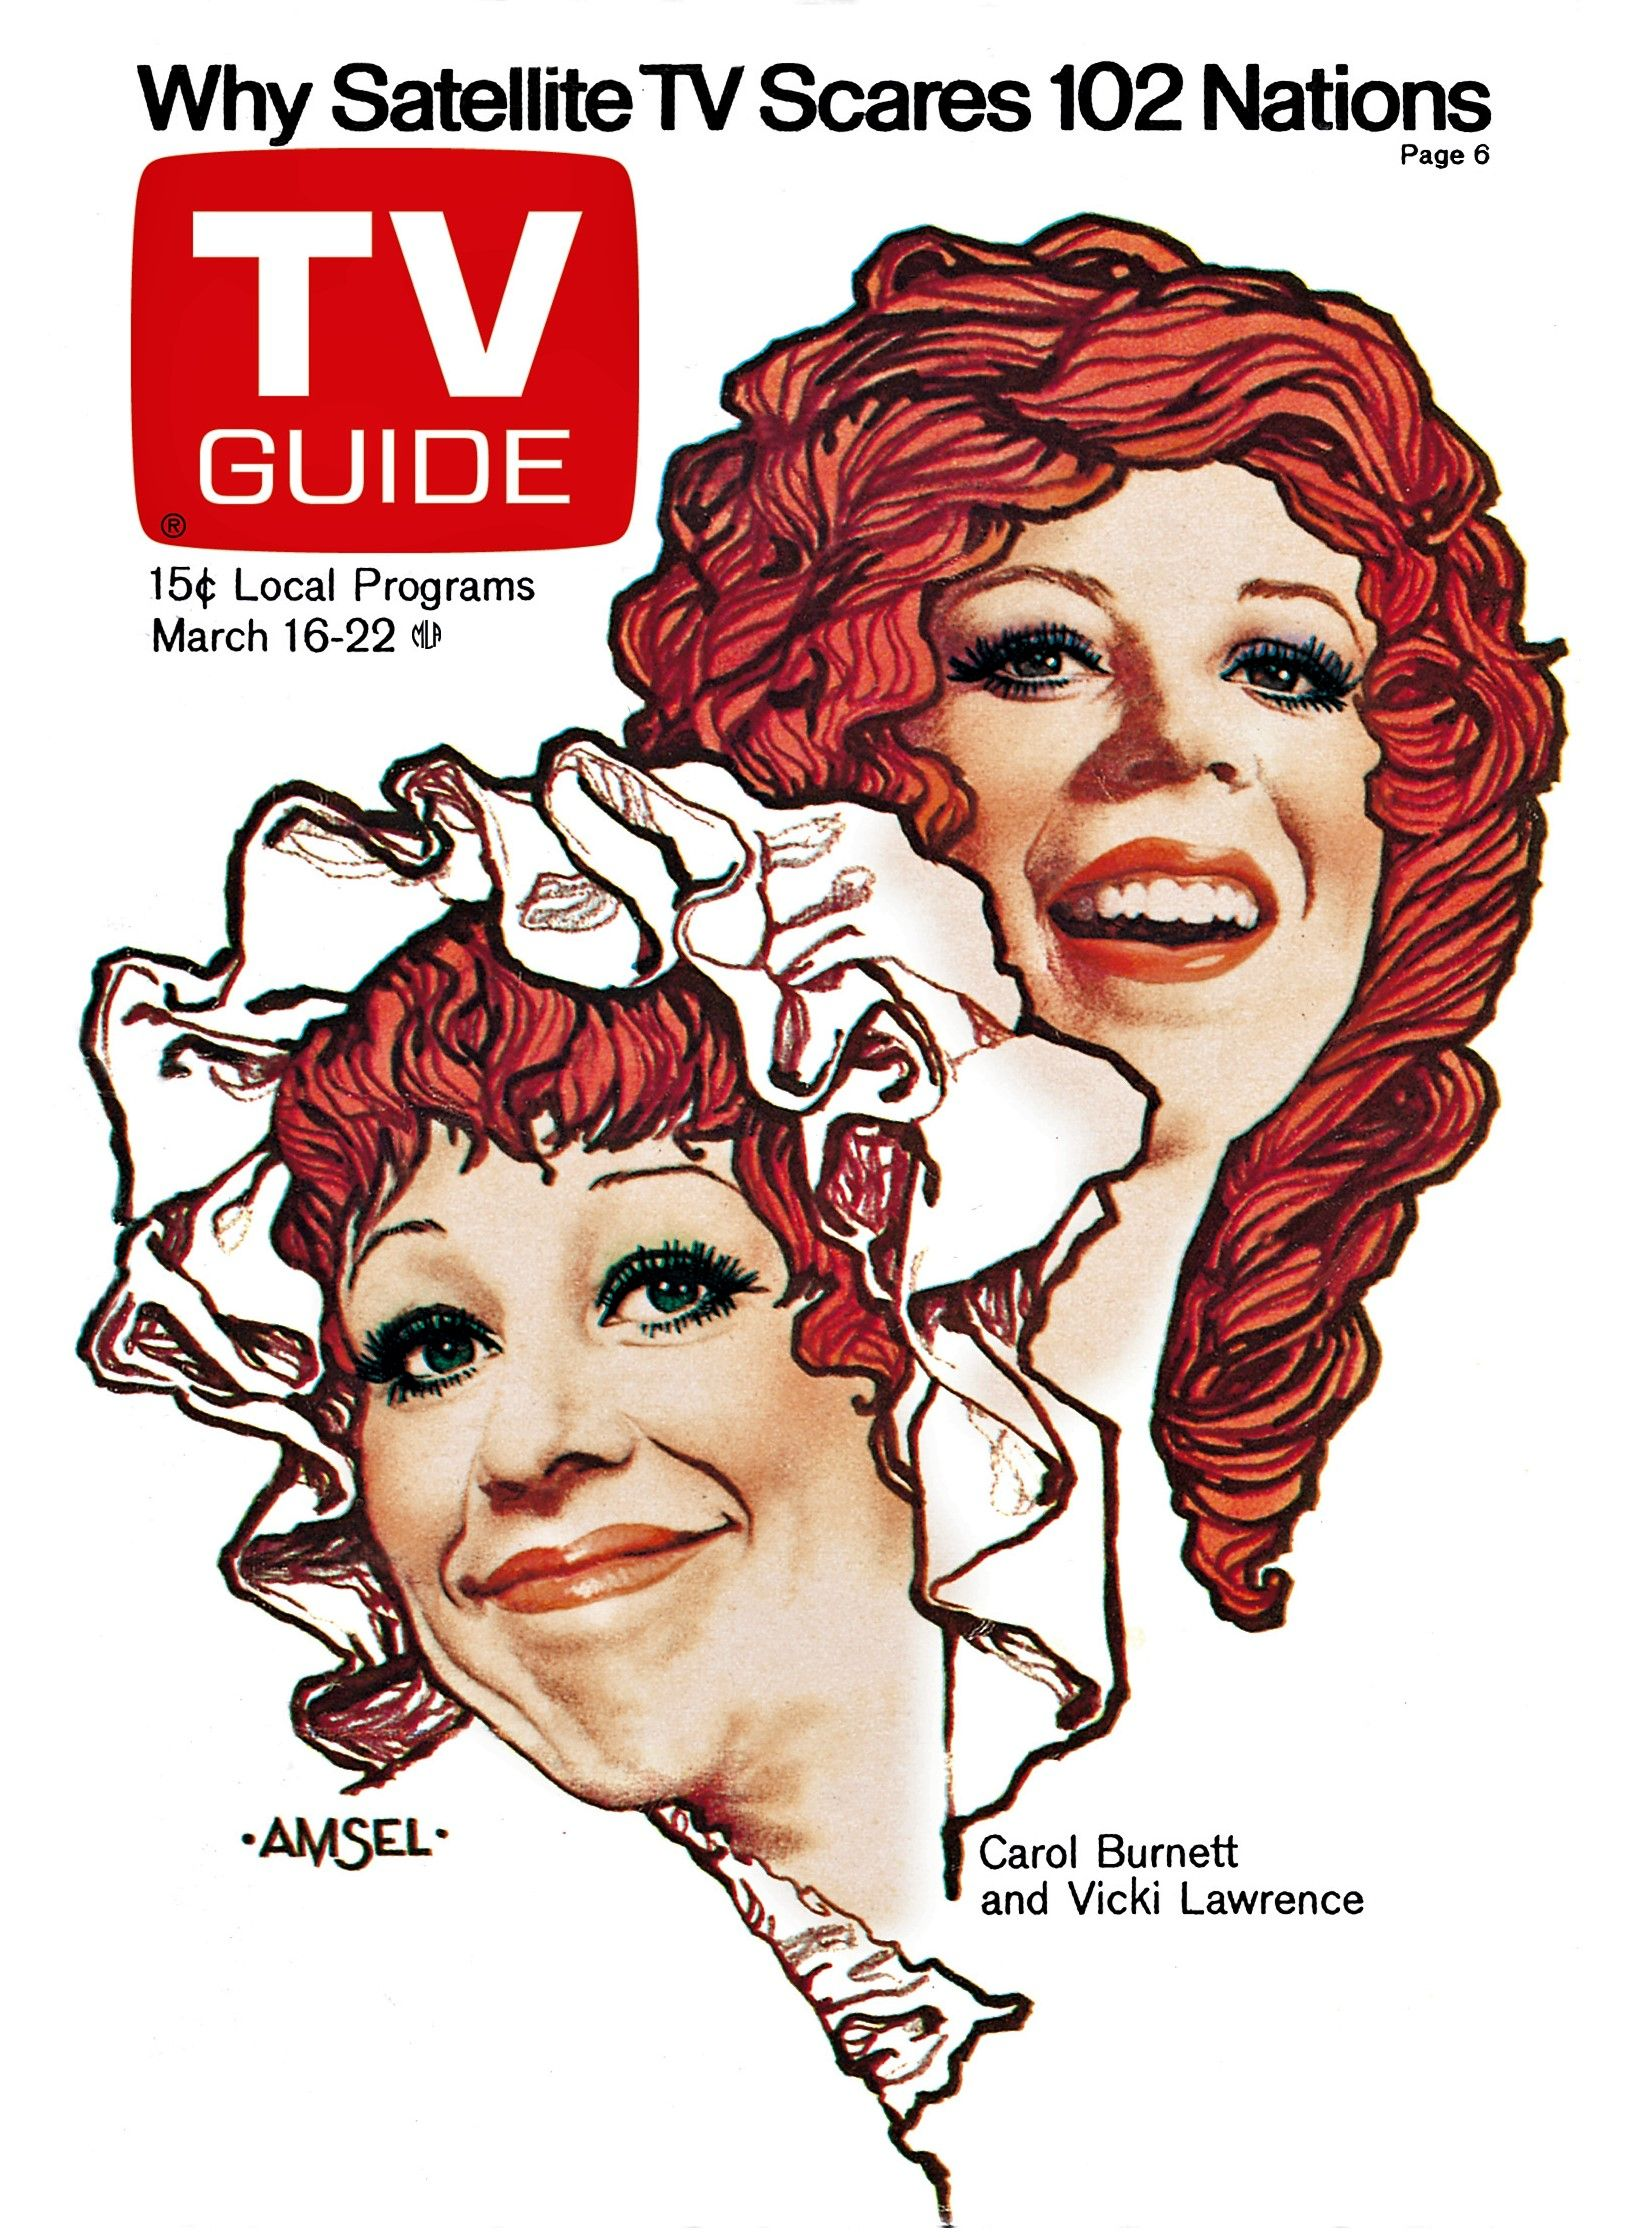 TV Guide cover by Richard Amsel. 1974. Tv guide, Carol